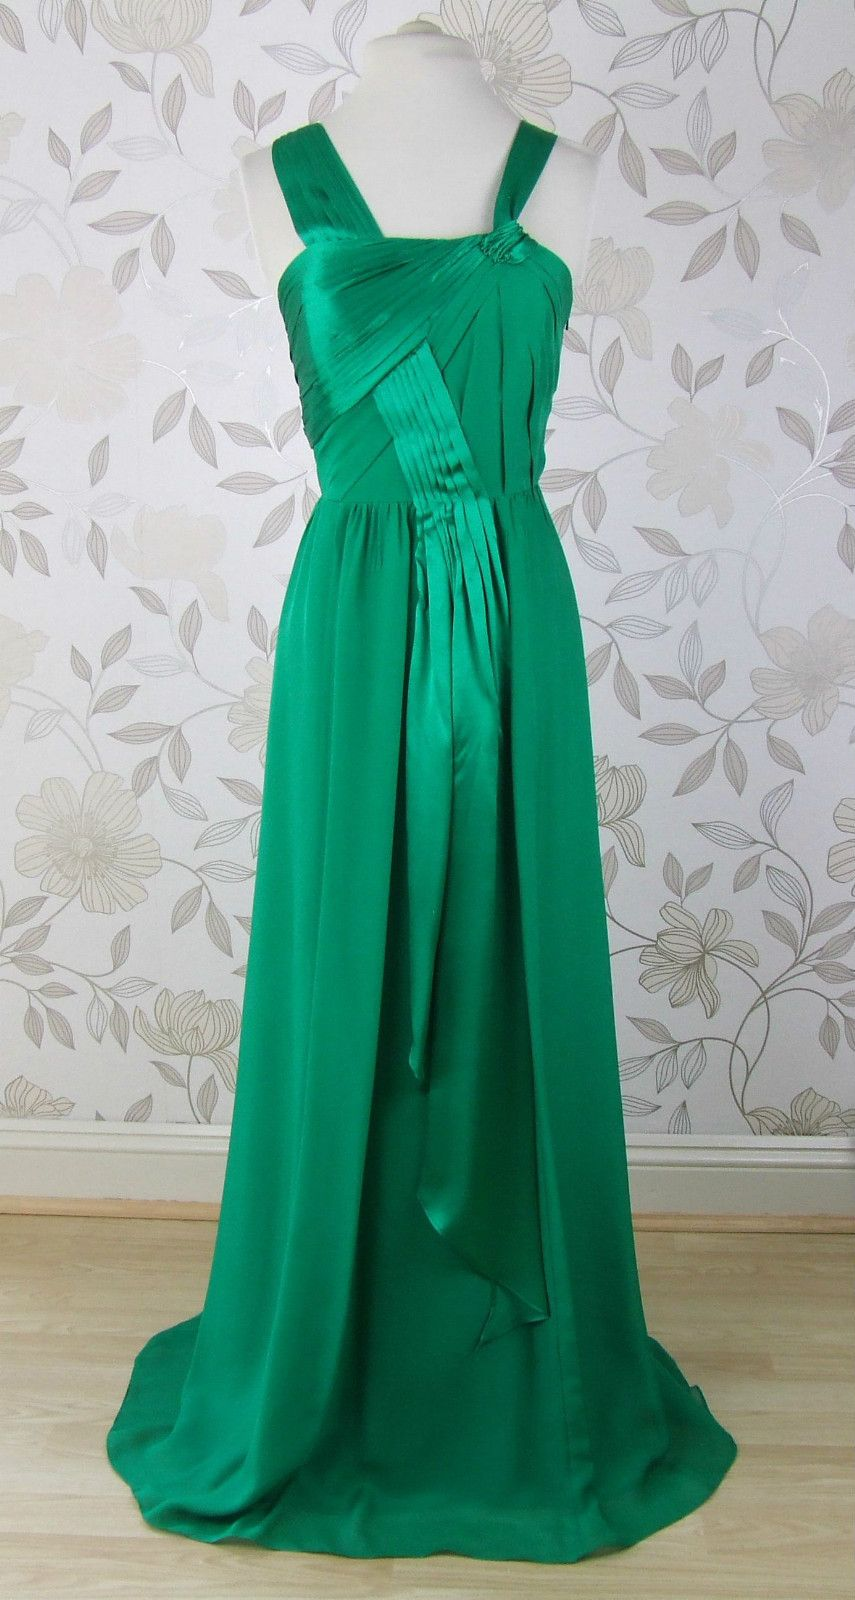 Gorgeous BNWT Monsoon EMERALD Green Silk Evening Long Dress Size 12 ...